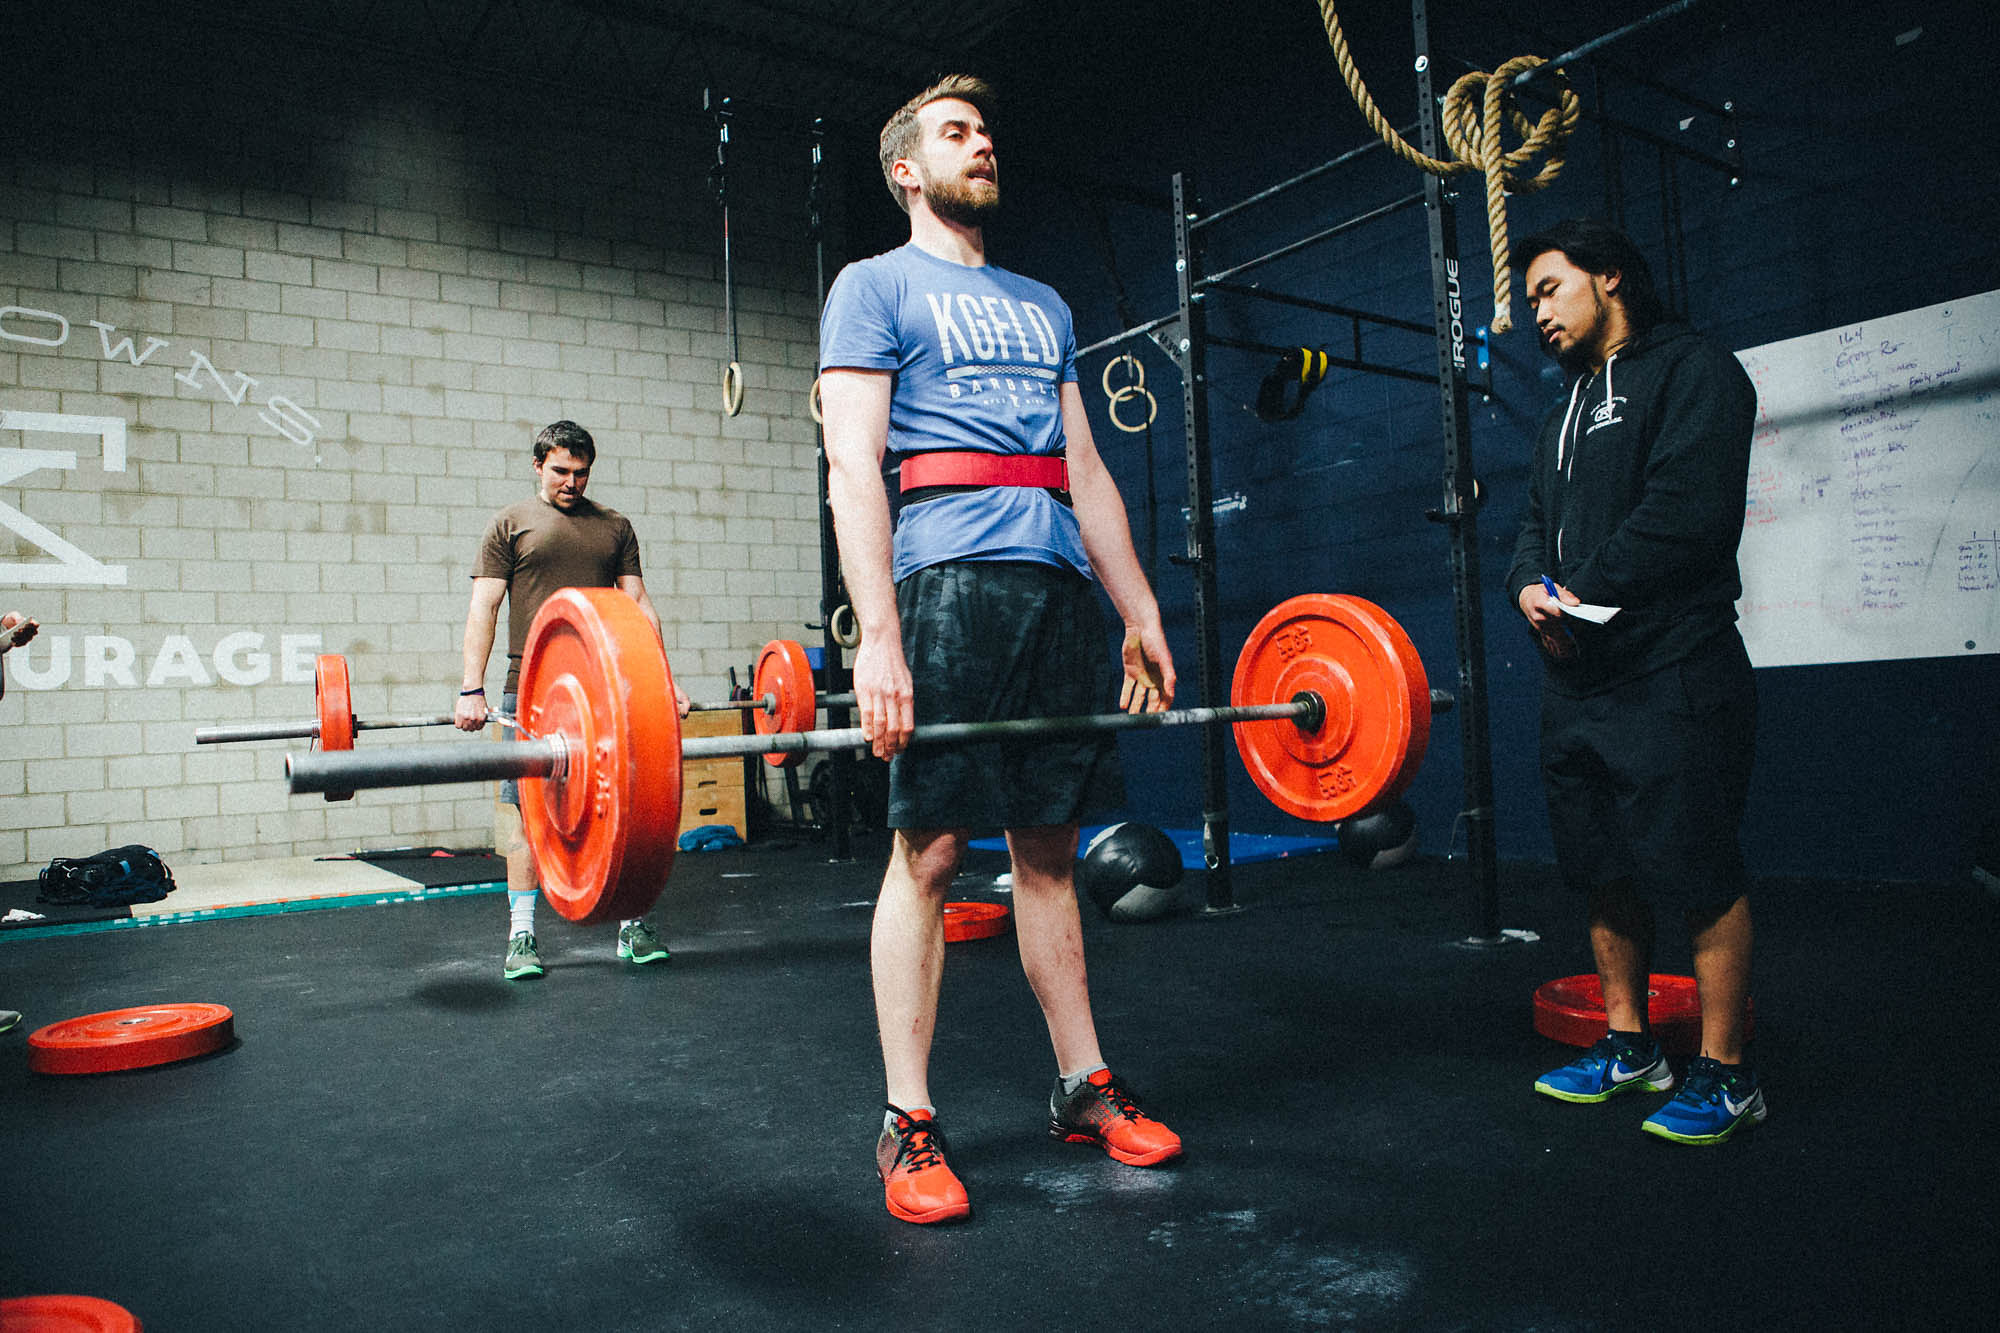 """""""I continued [CrossFit] because it has helped me be in the best shape of my life. It also introduced me to an amazing community here in Minneapolis and around the country. My life in this city began once I started going to CrossFit."""""""